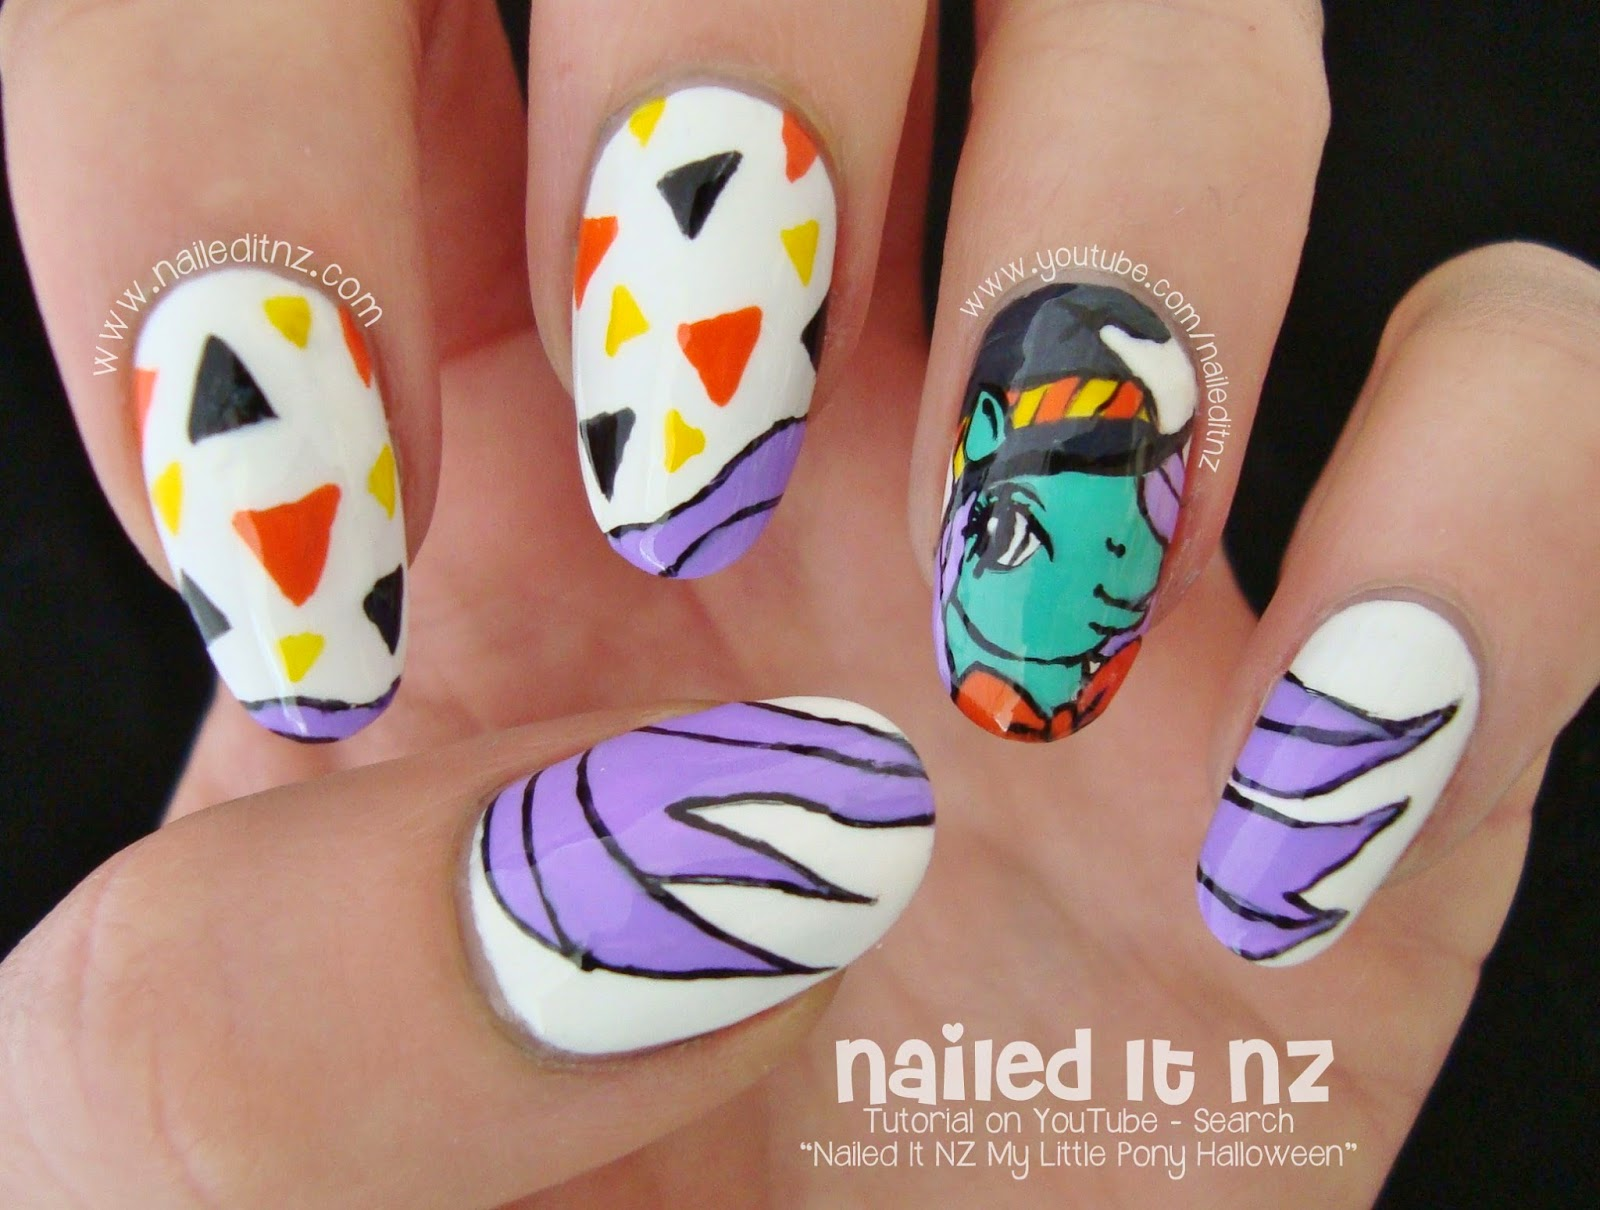 My Little Pony Halloween Nail Art Tutorial